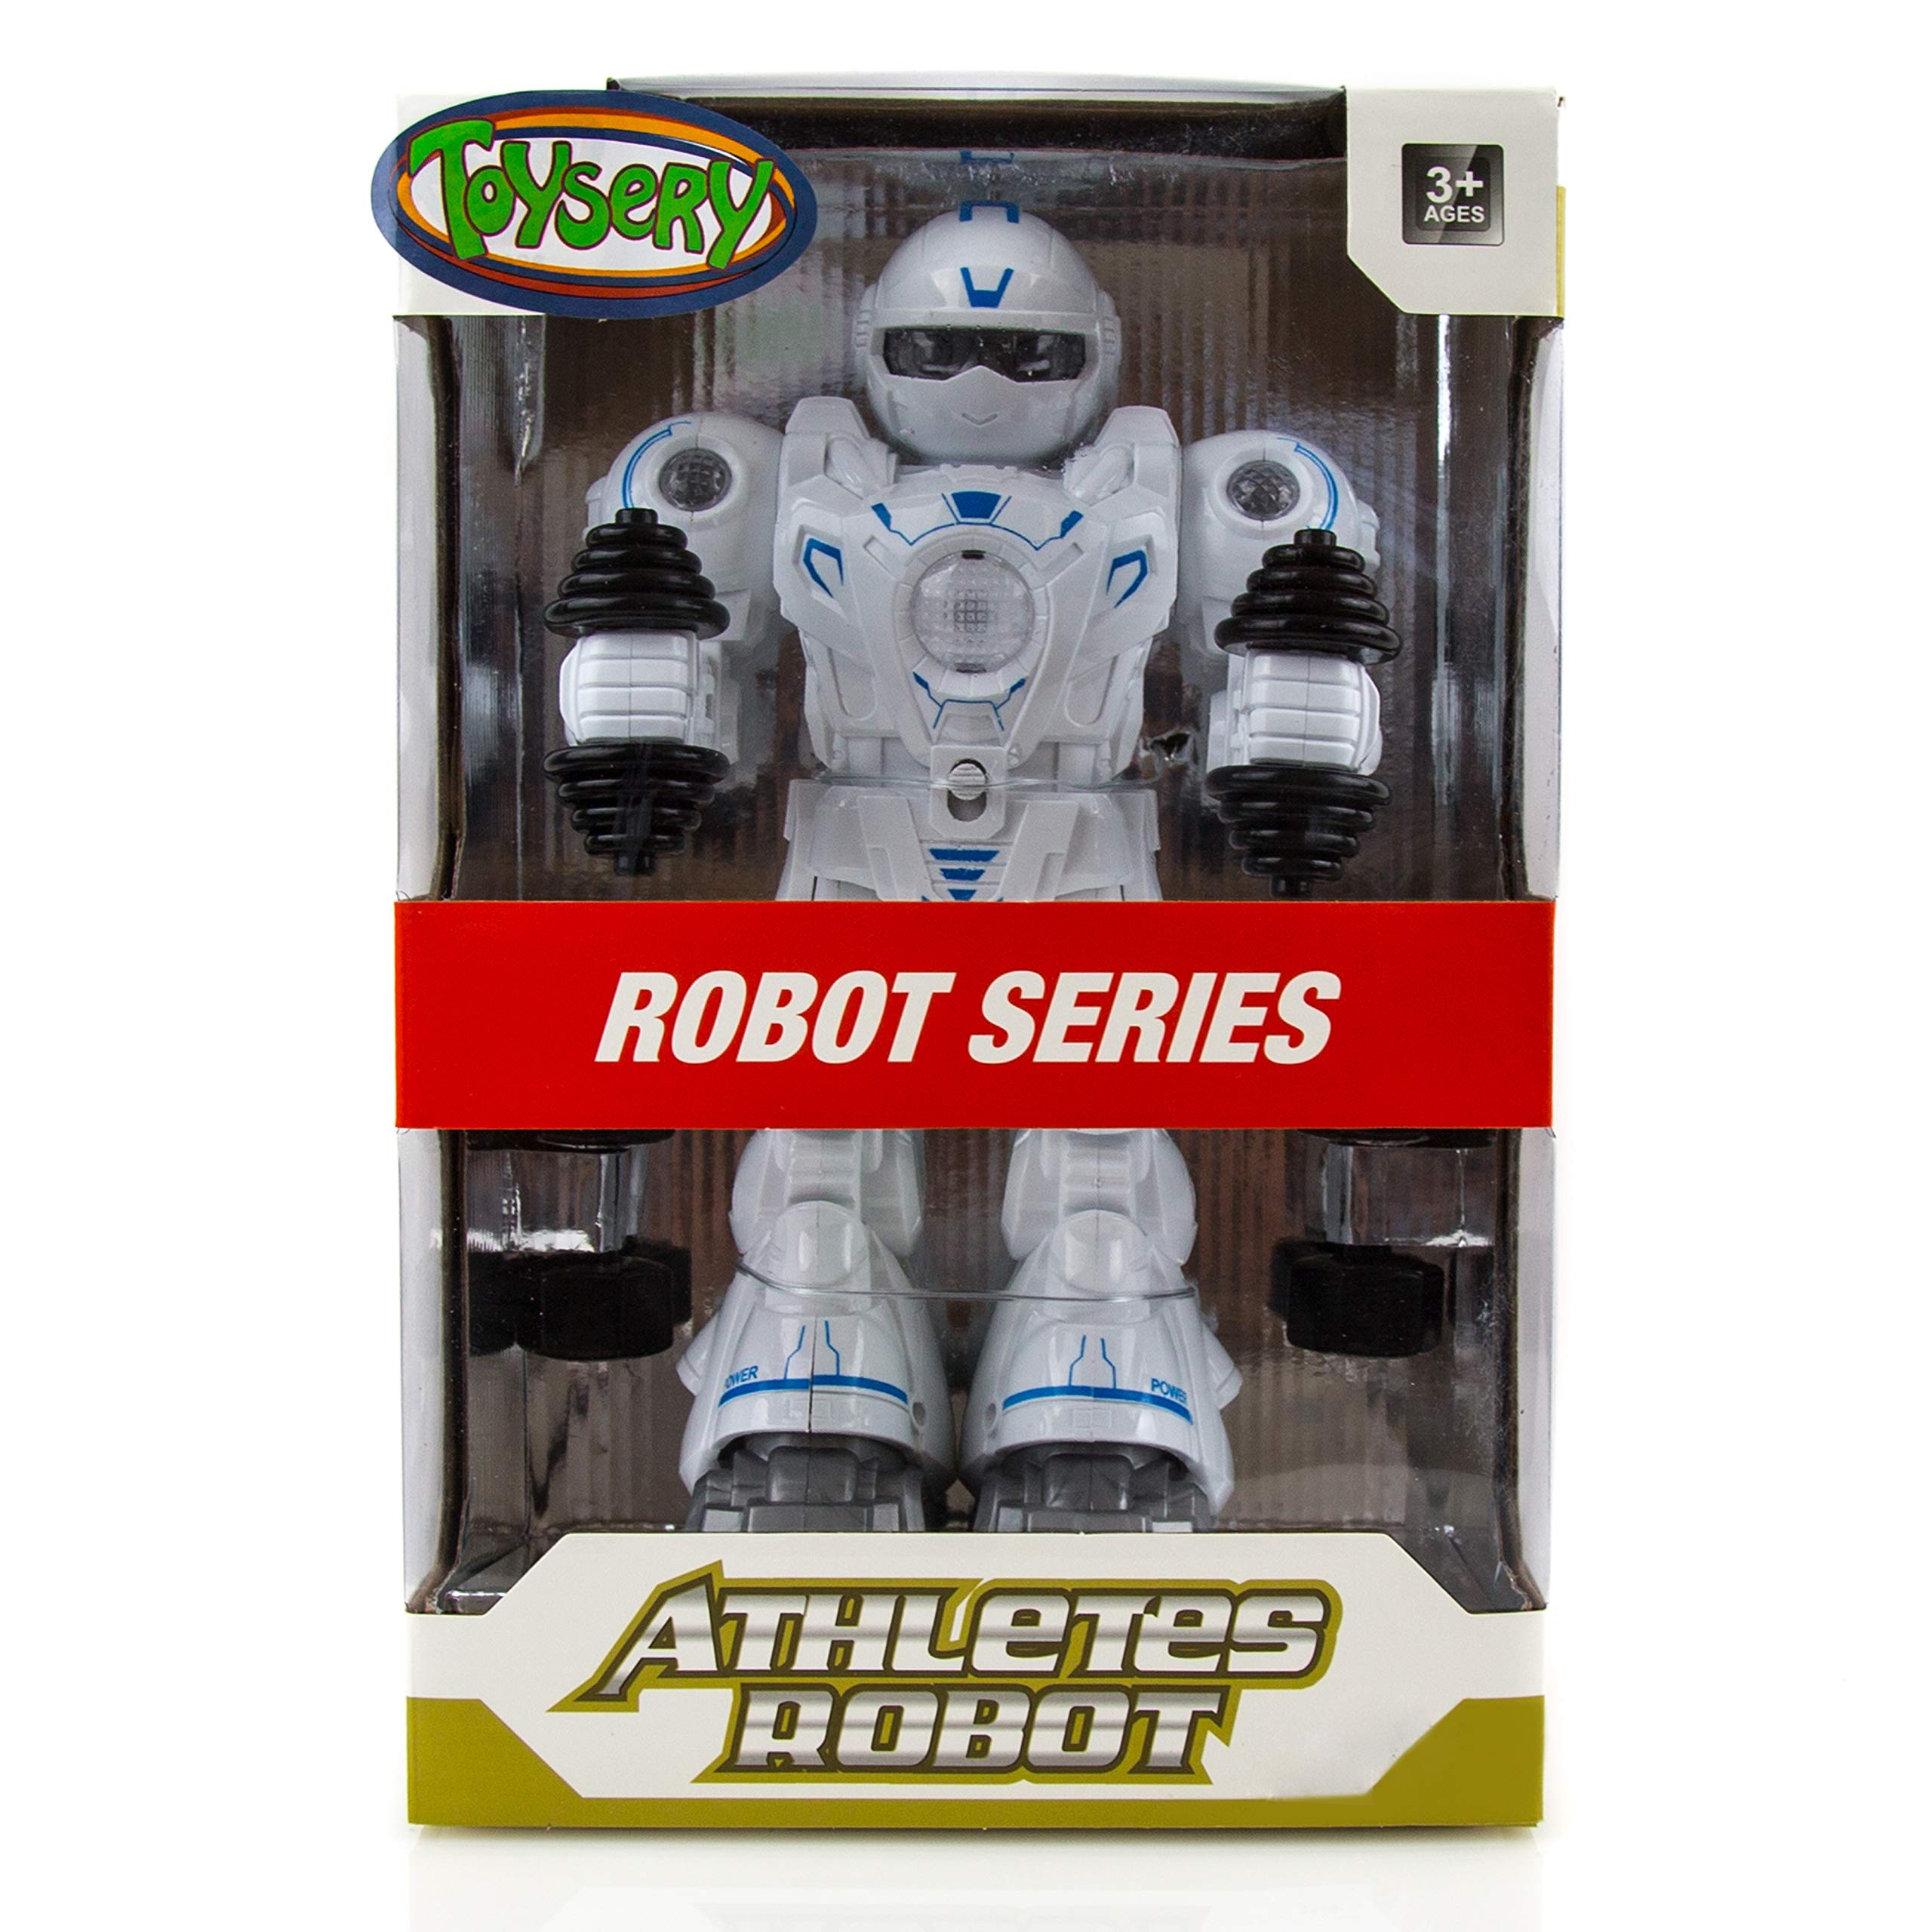 Toysery Walking Dancing Robot Toy Kids - Interactive Walking, Dancing Smart Robot Kit Boys & Girls (Battery Operated) by Toysery (Image #2)